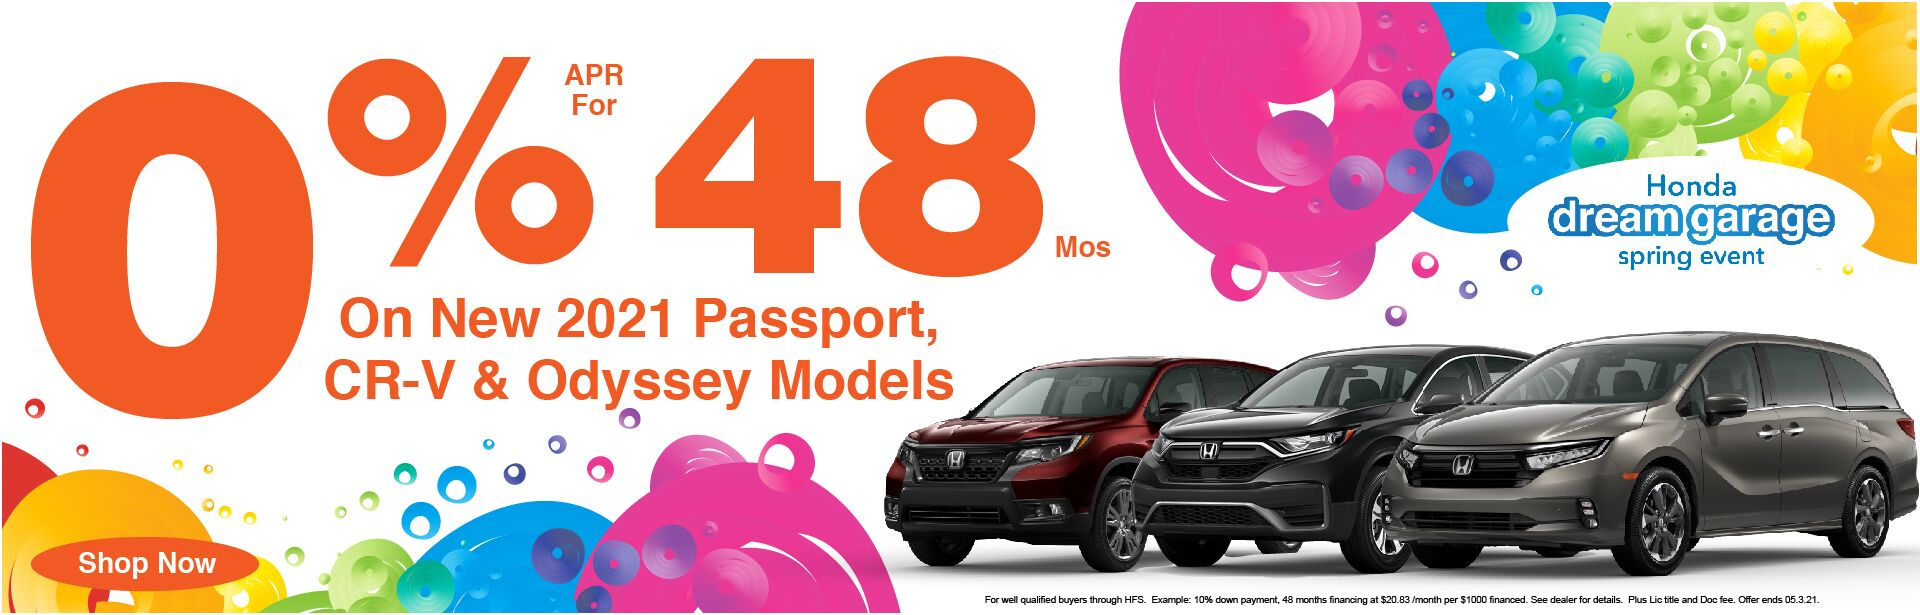 2021 CR-V, Passport, & Odyssey 0% APR x 48 Months